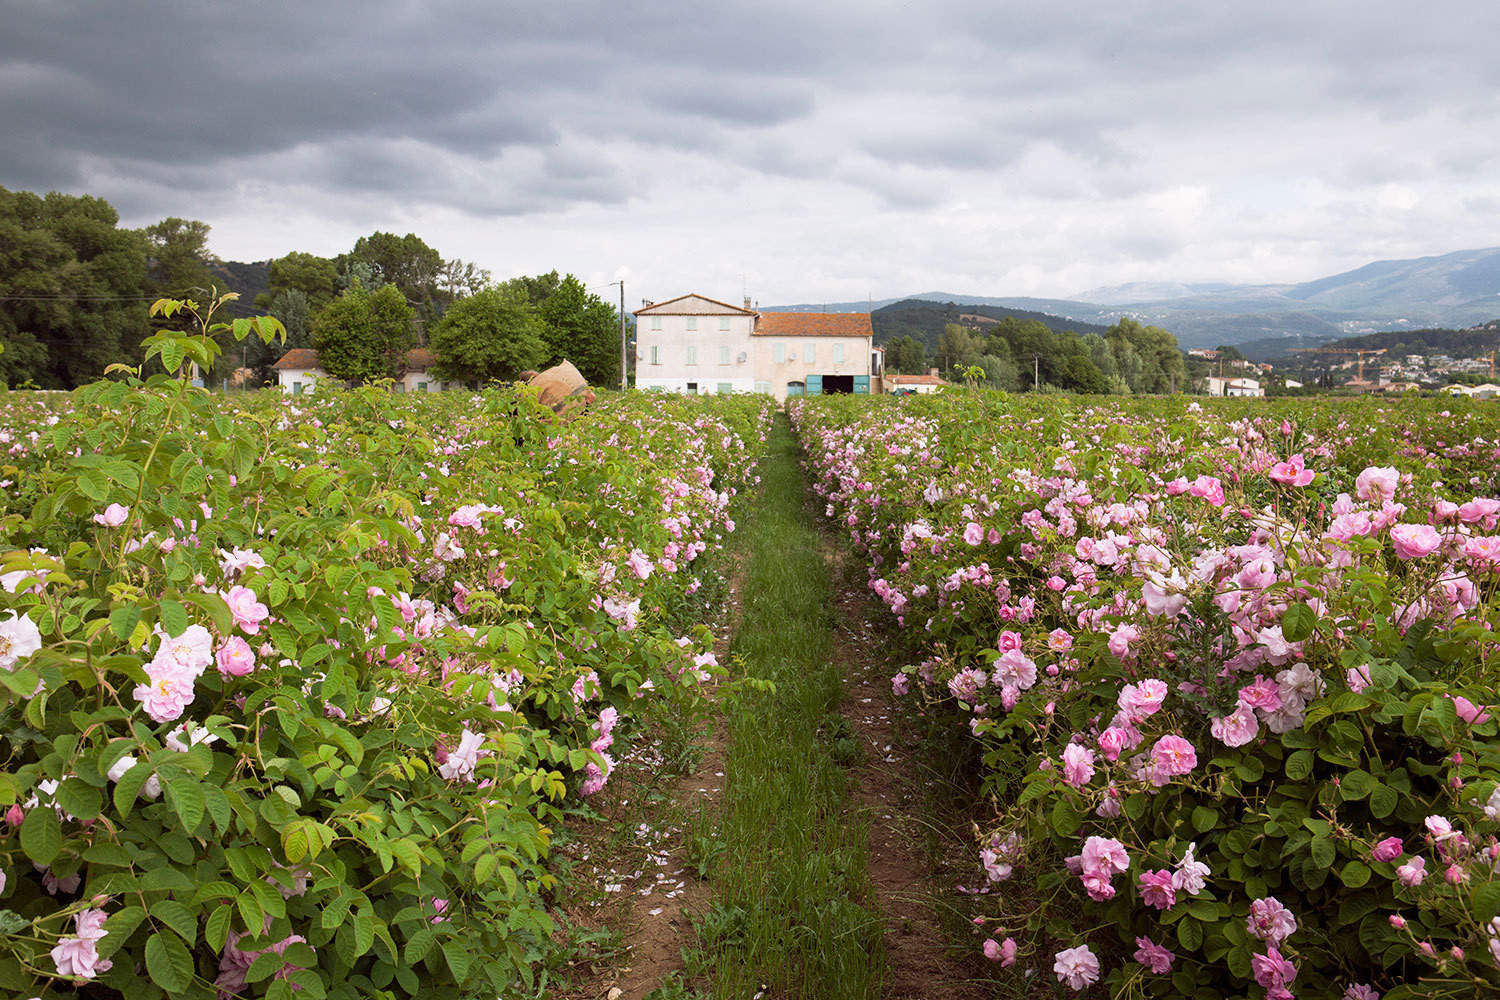 Fields of May roses at the Mul family's generations-old flower farm, in Pégomas, France.